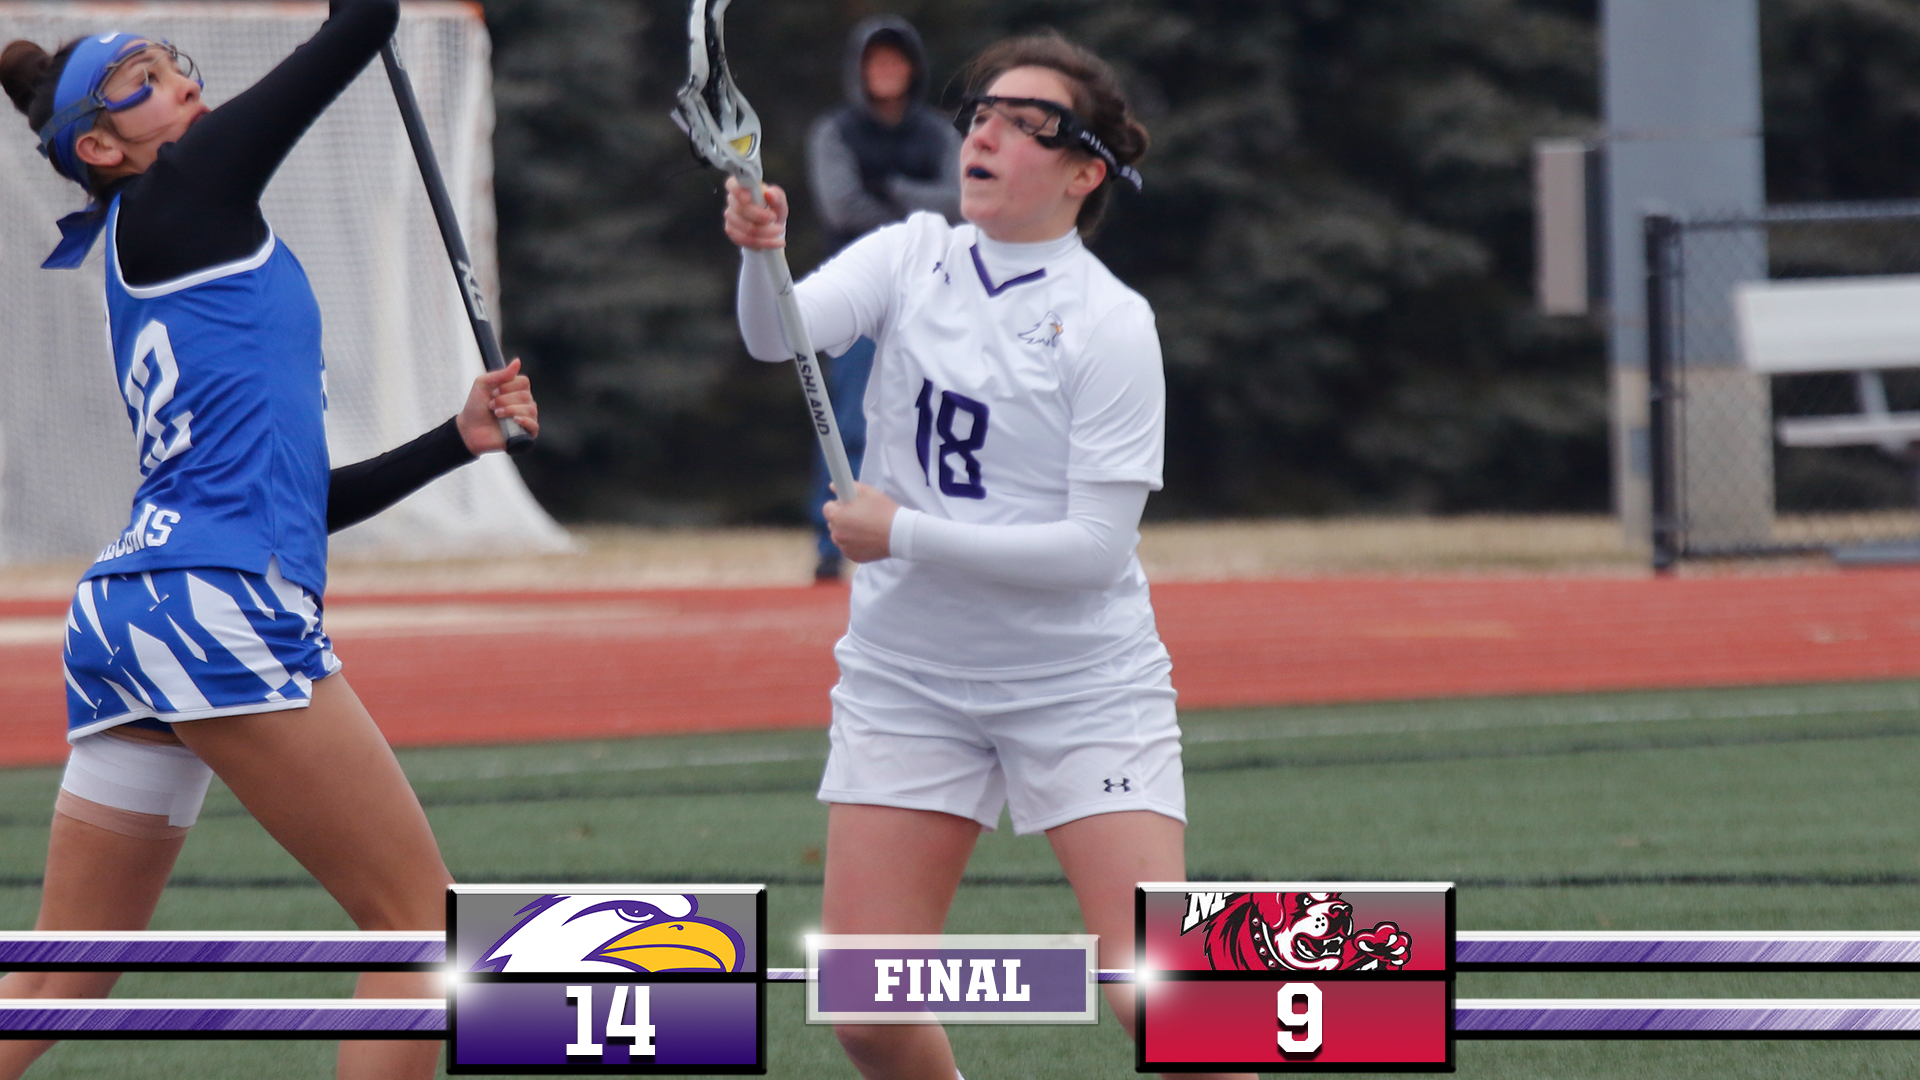 Eagles Win First GLIAC Game At Maryville, 14-9